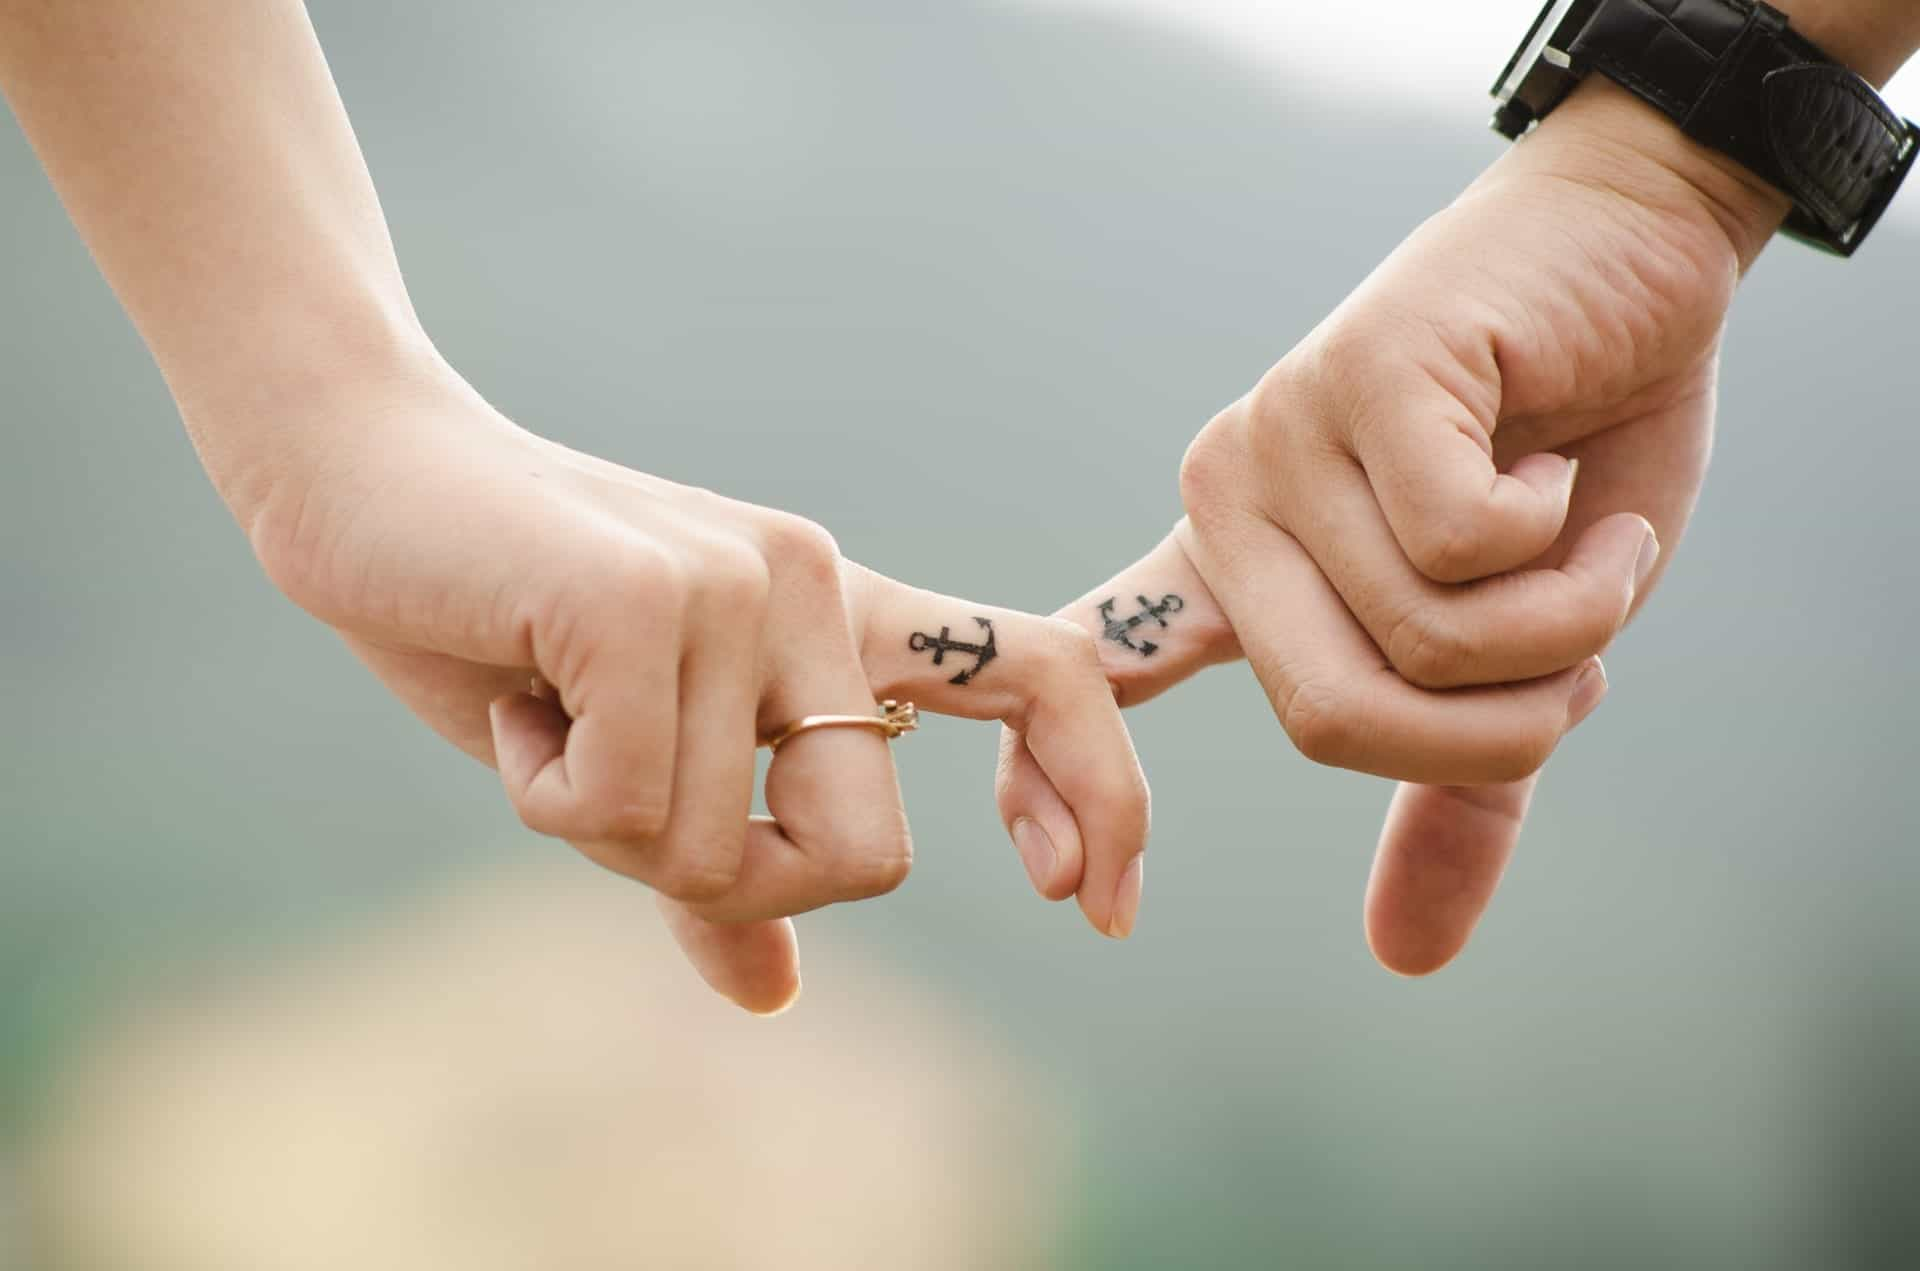 fingers holding hands with tattoos pexels-photo-38870